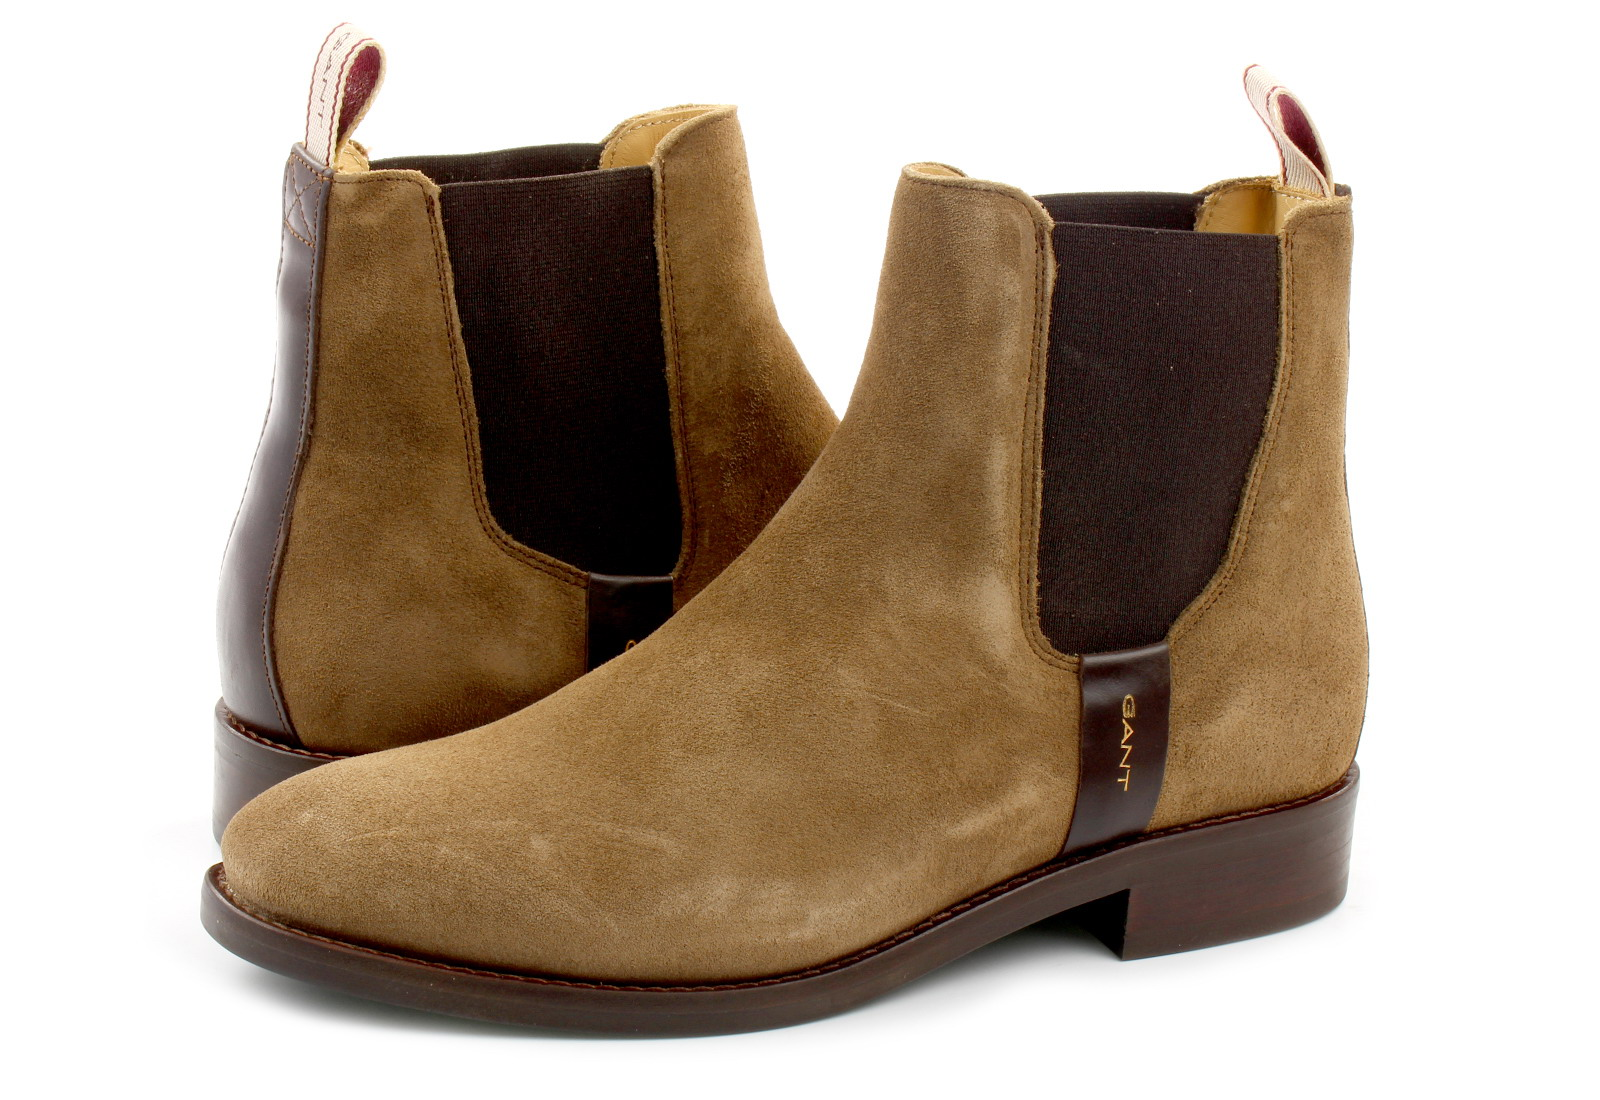 6490e182839166 Gant Boots - Fay - 17553938-G467 - Online shop for sneakers